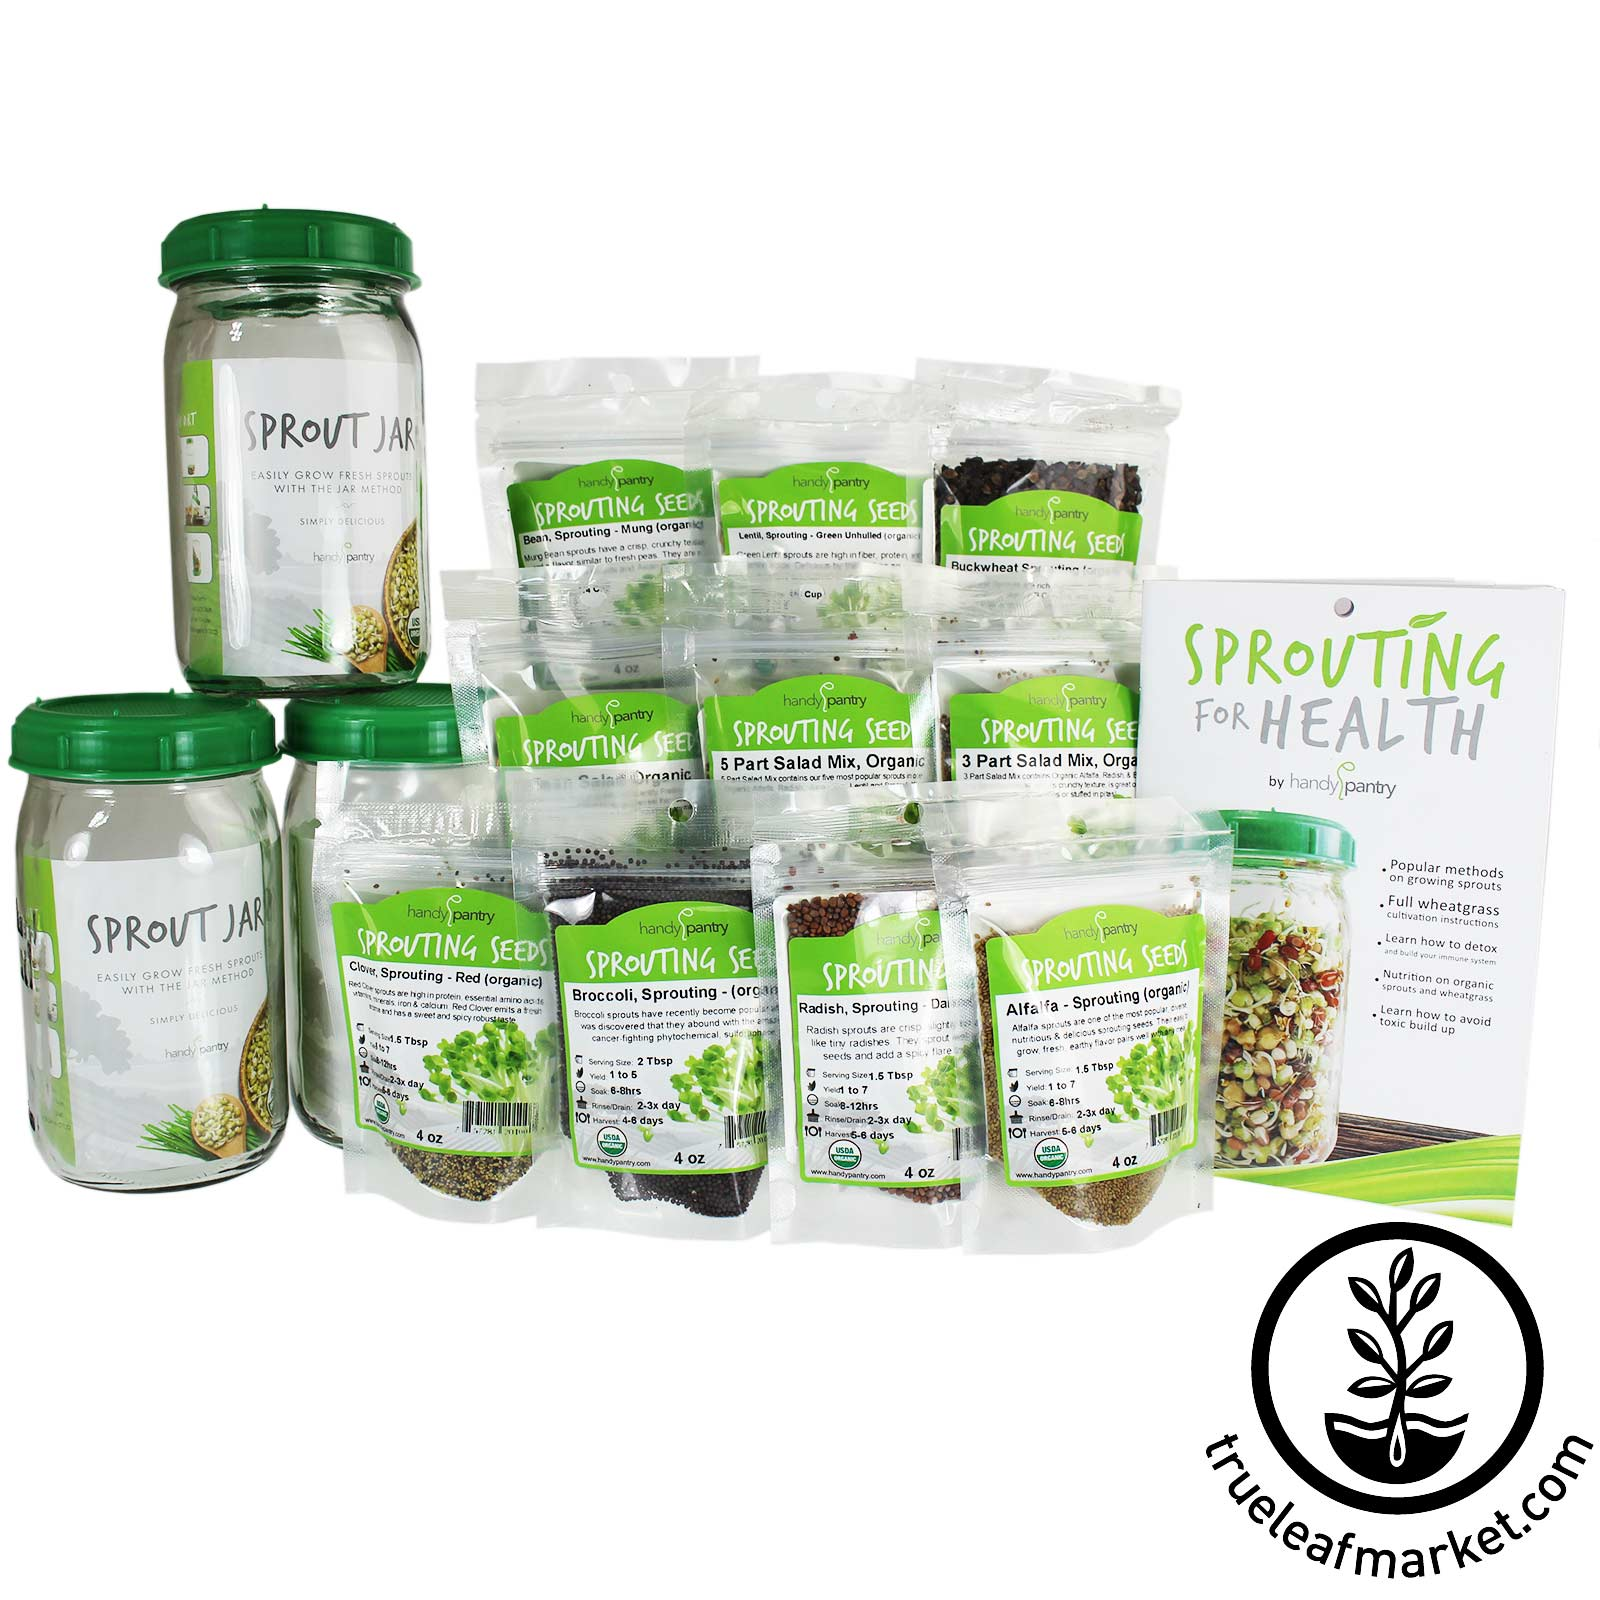 3 Jar Seed Sprouting Jar Kit